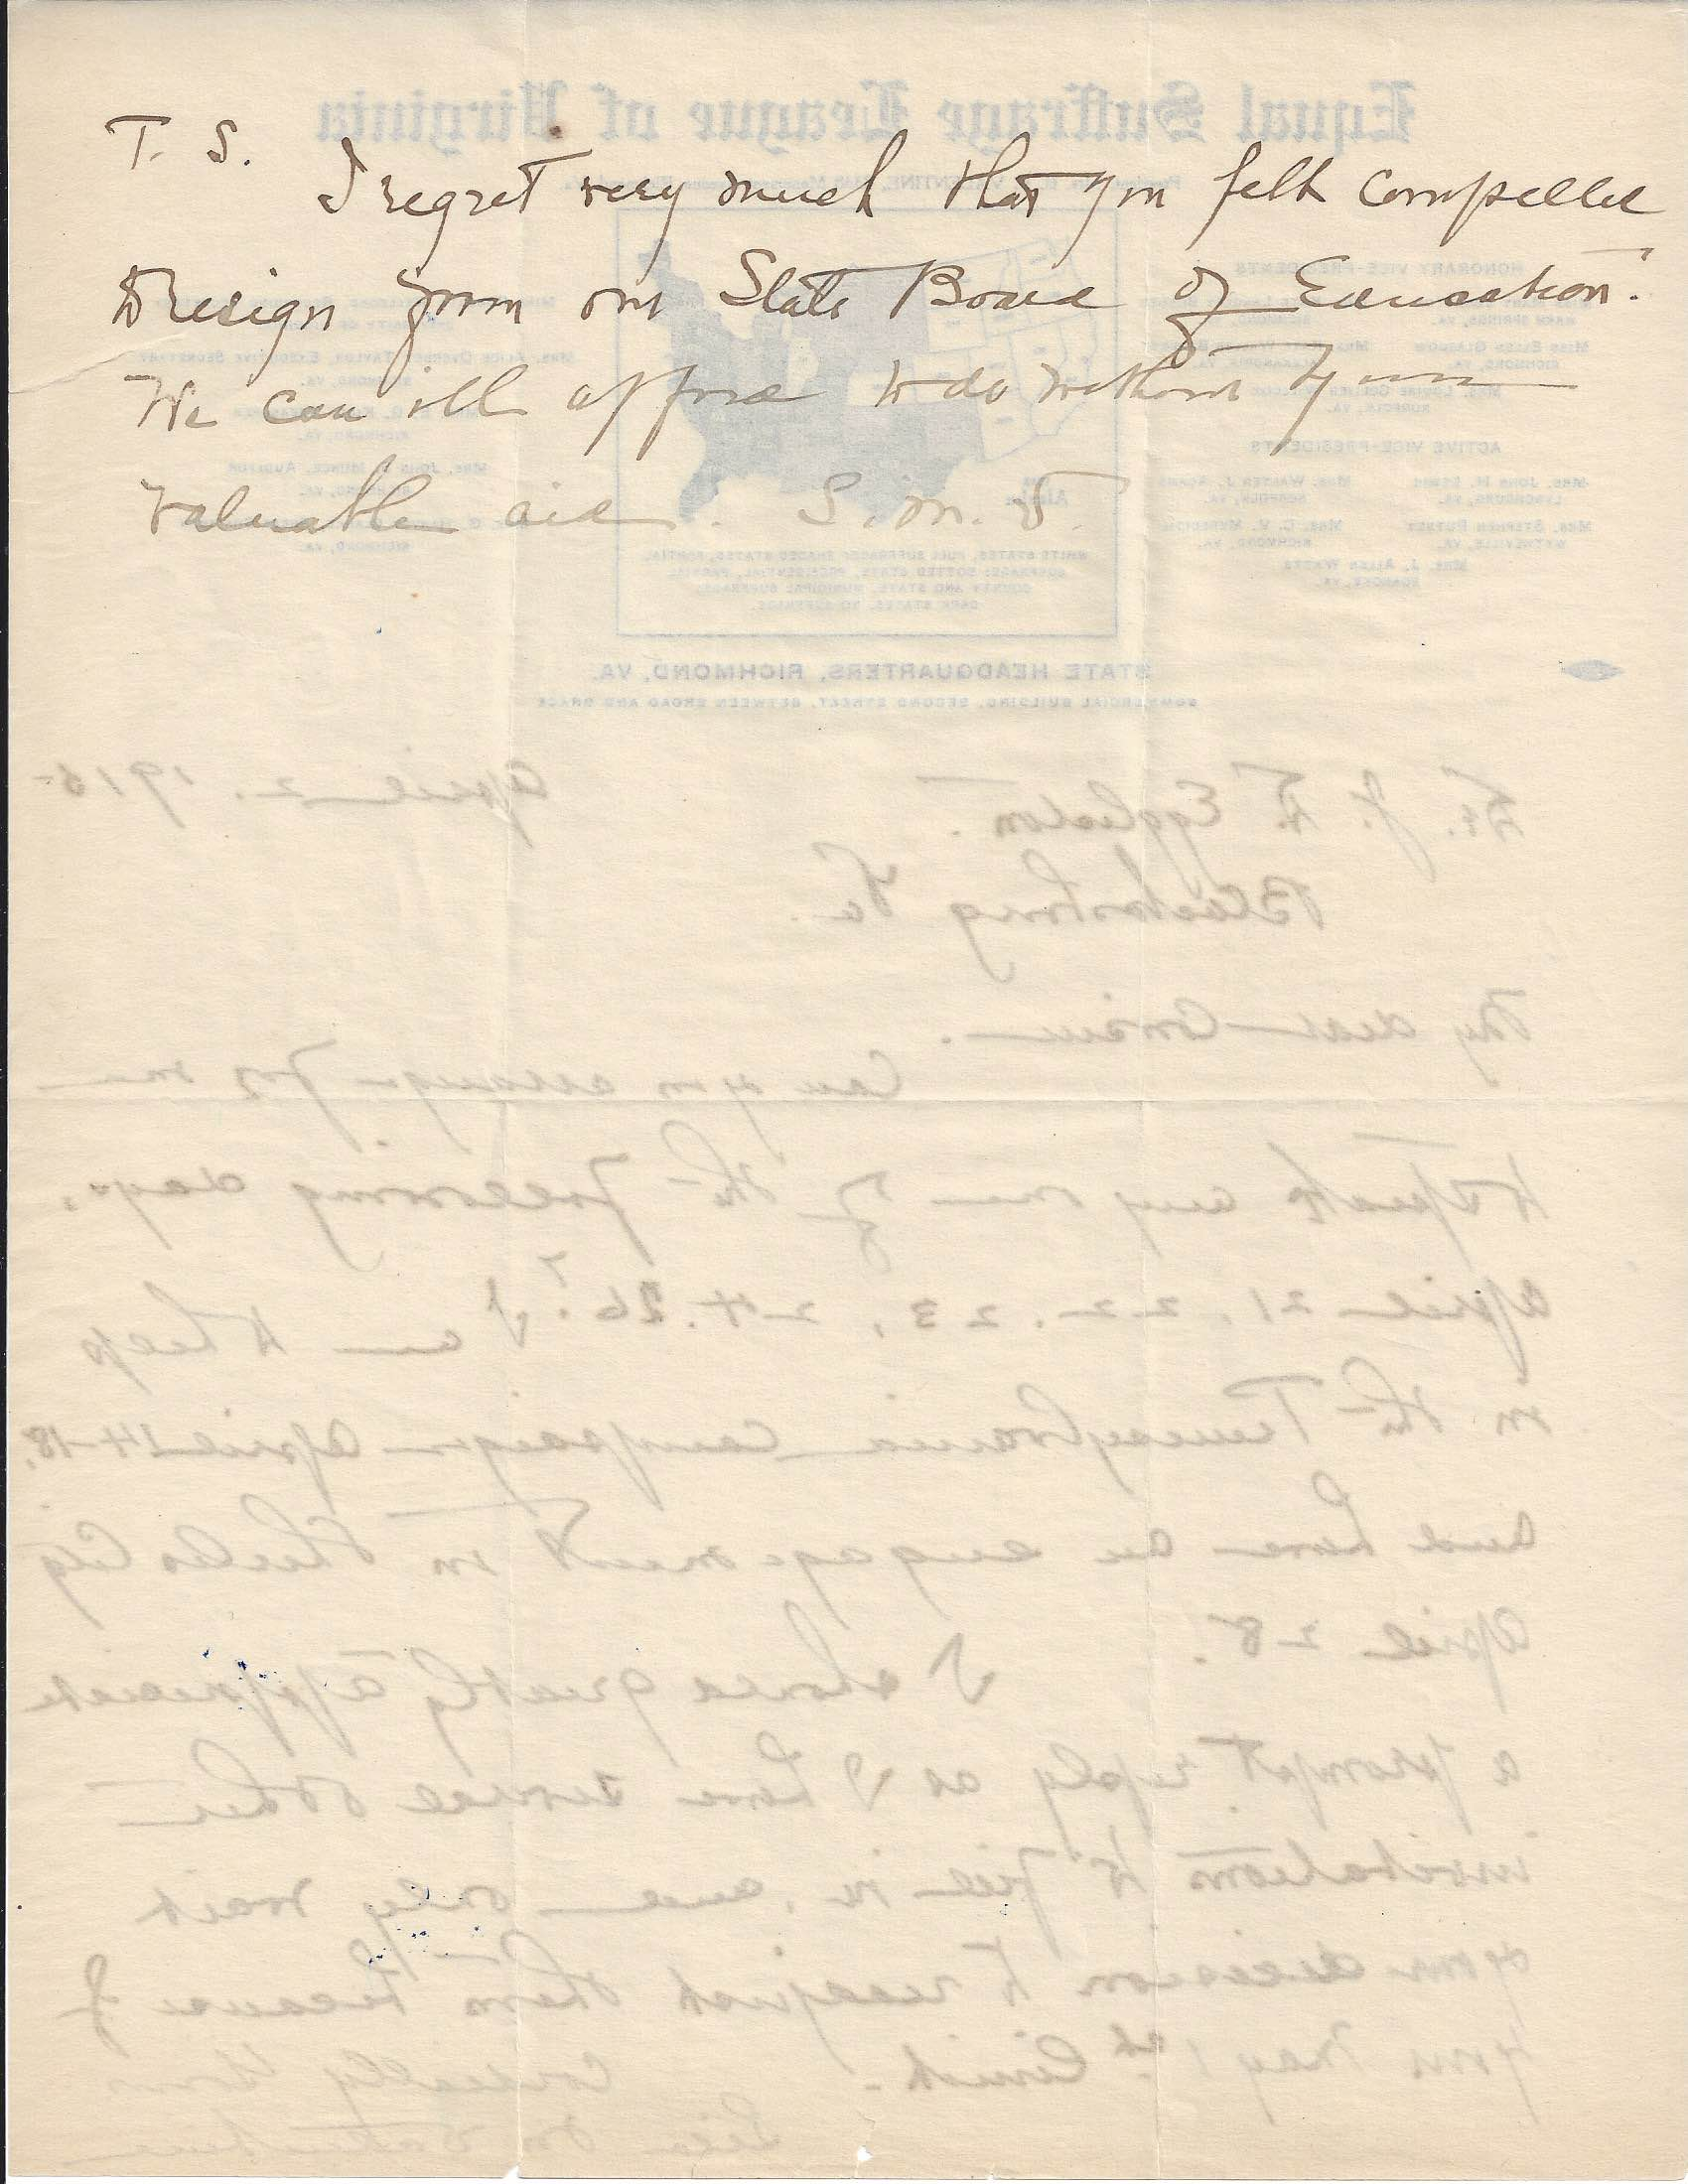 Page two of a 1915 letter from Lila Meade Valentine to J. D. Eggleston. The letter is on Equal Suffrage League of Virginia stationery.